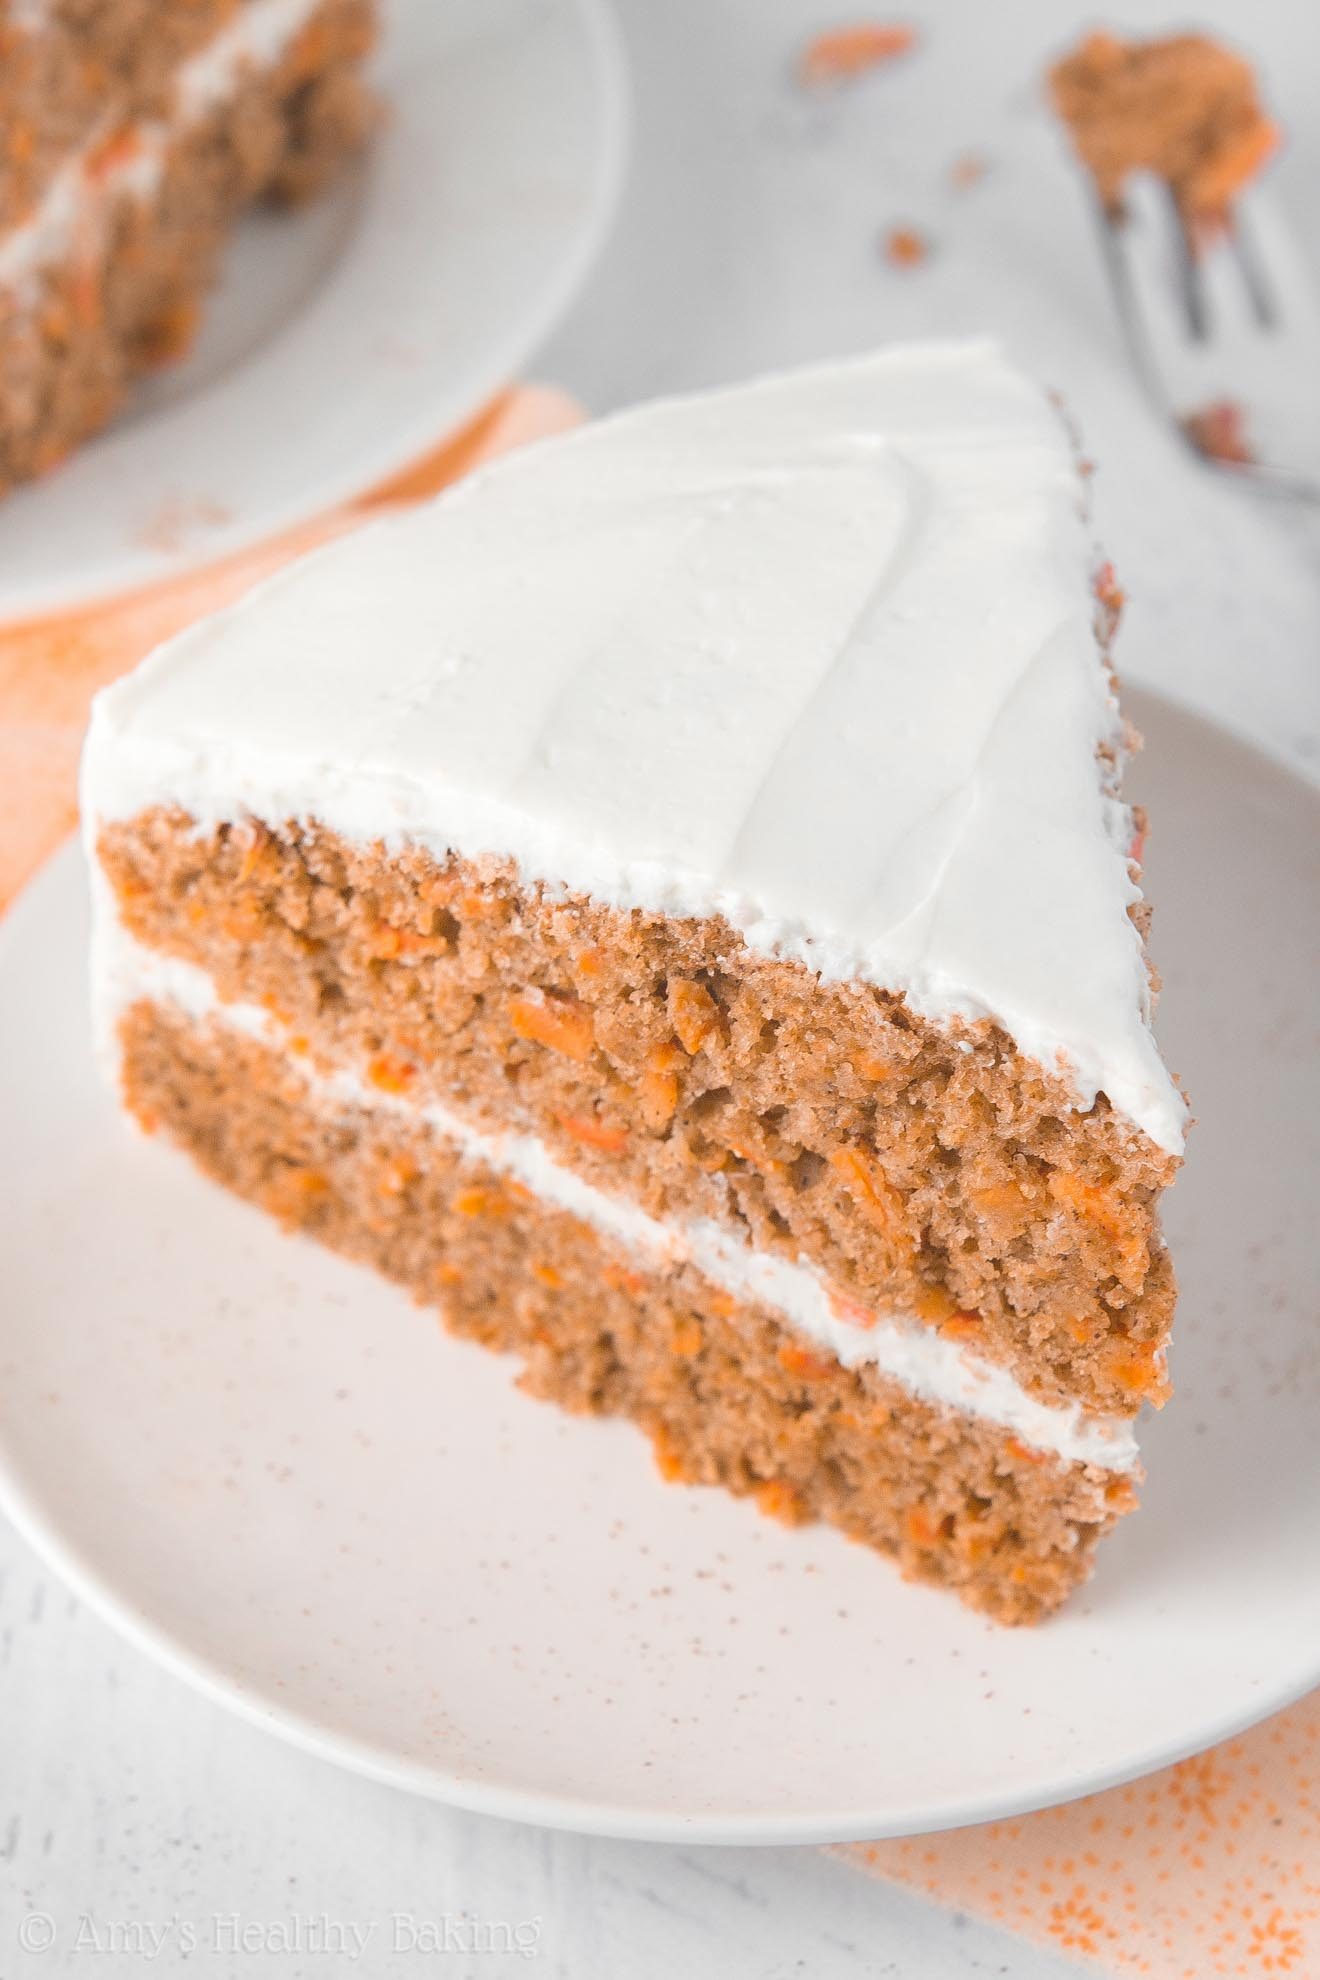 The BEST Healthy Carrot Cake, a two-layer cake with cream cheese frosting